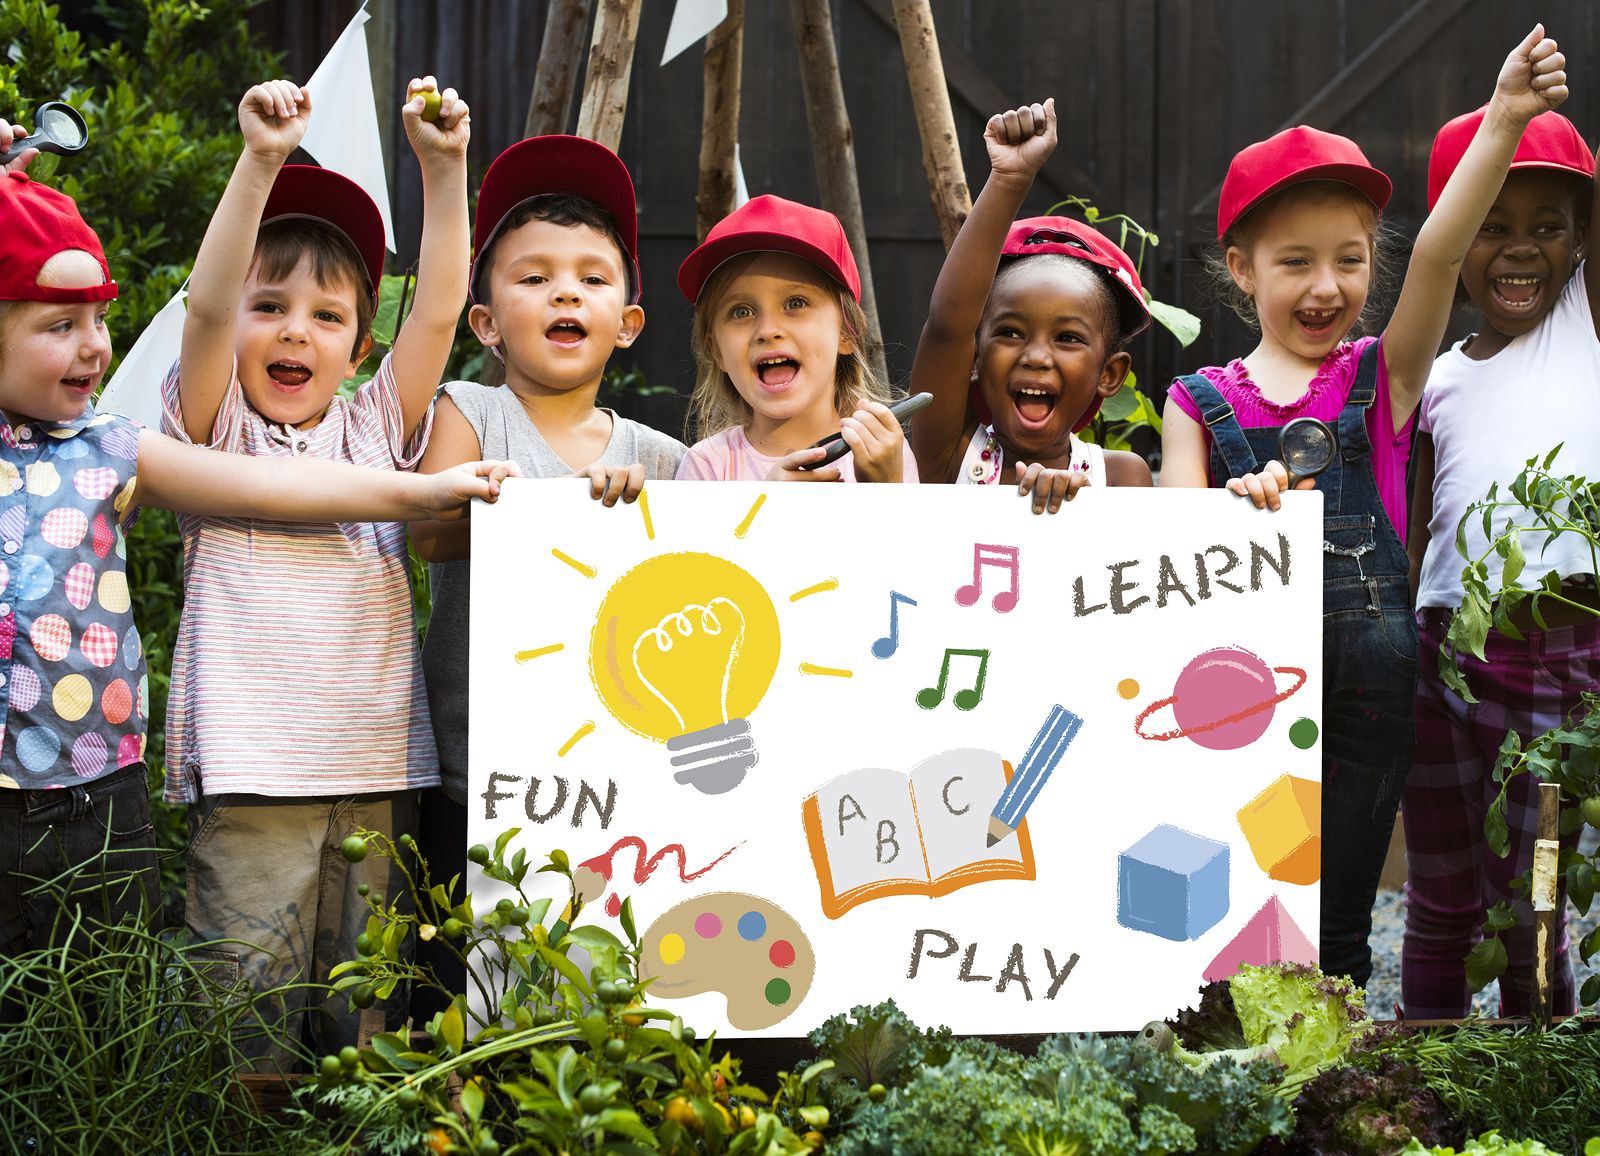 25 Super Cool Summer Camp Activities & Games For Kids